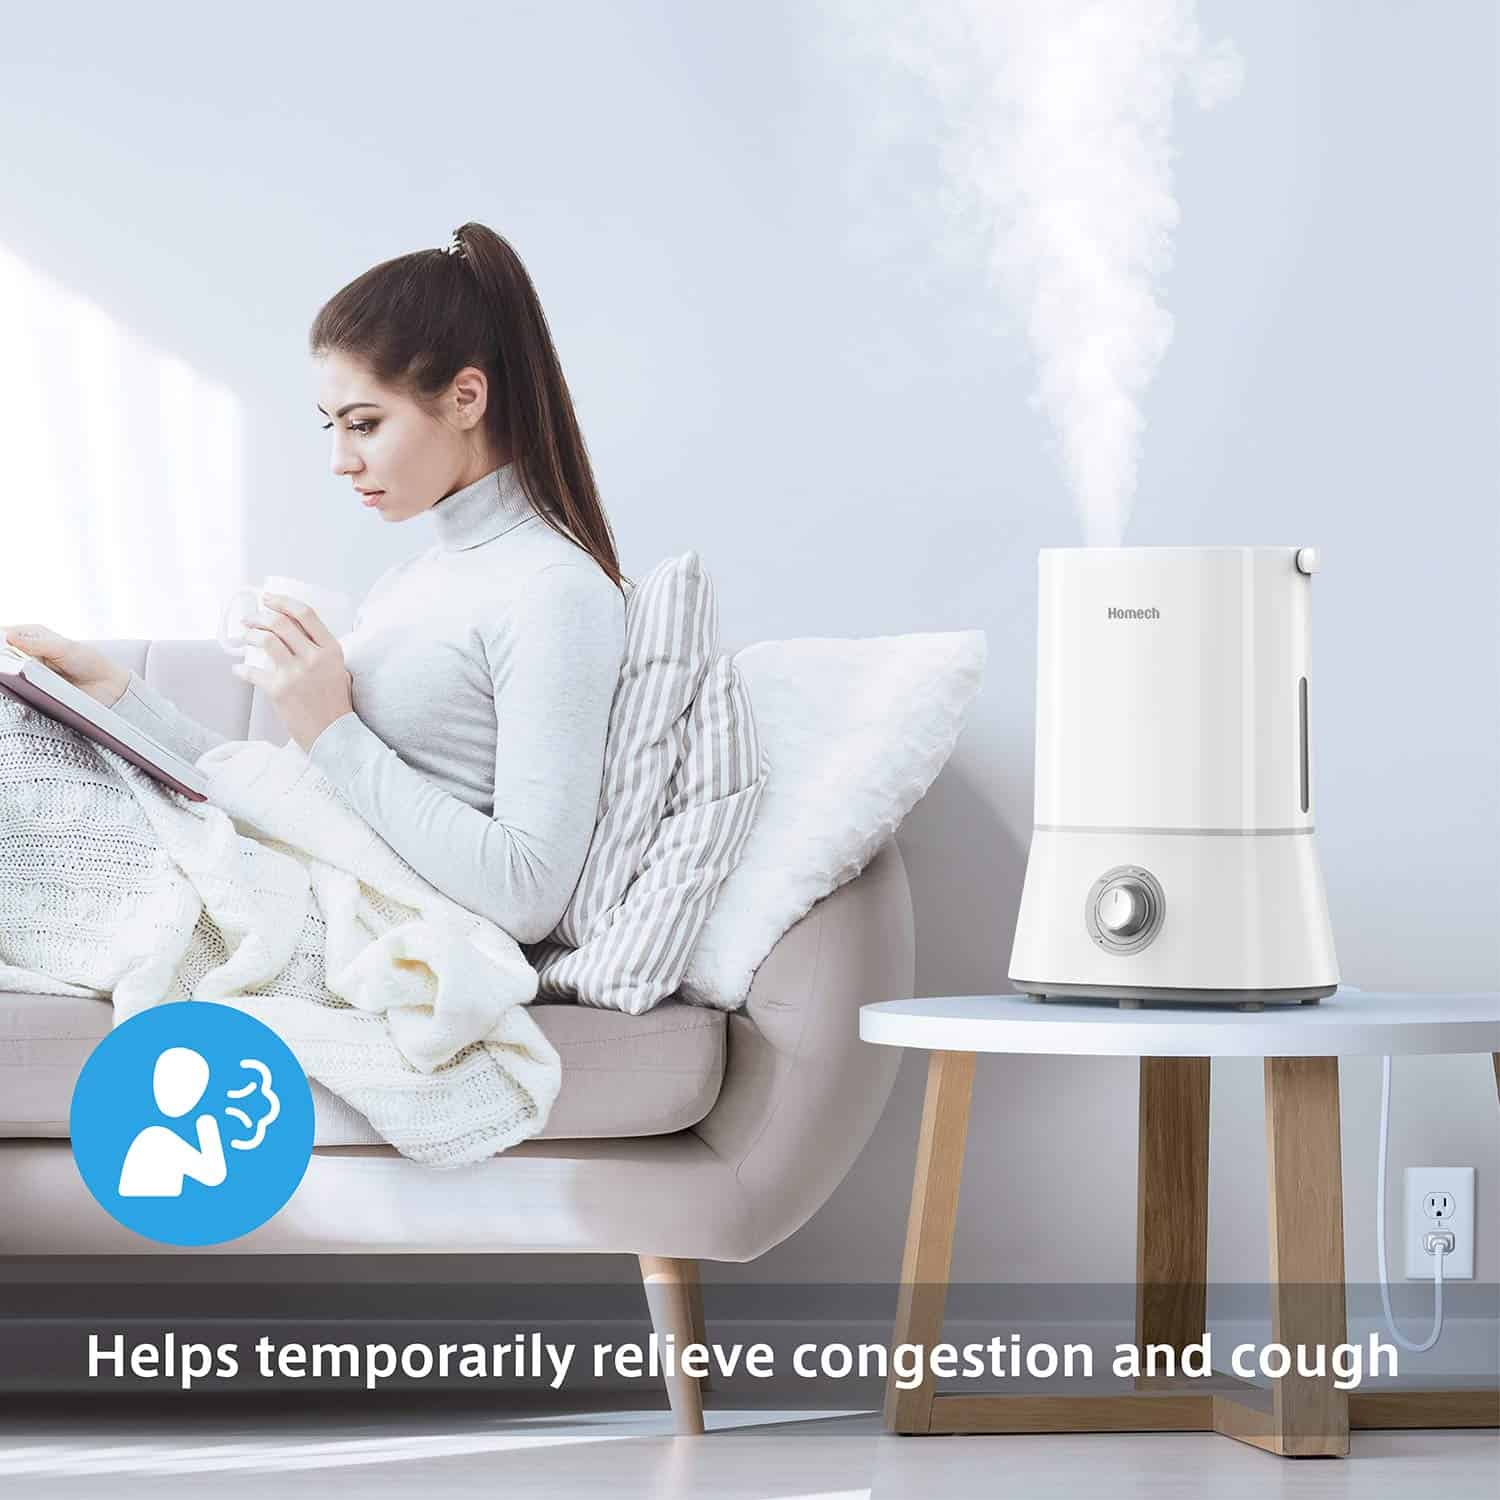 Homech Cool Mist Humidifier for bedroom Review